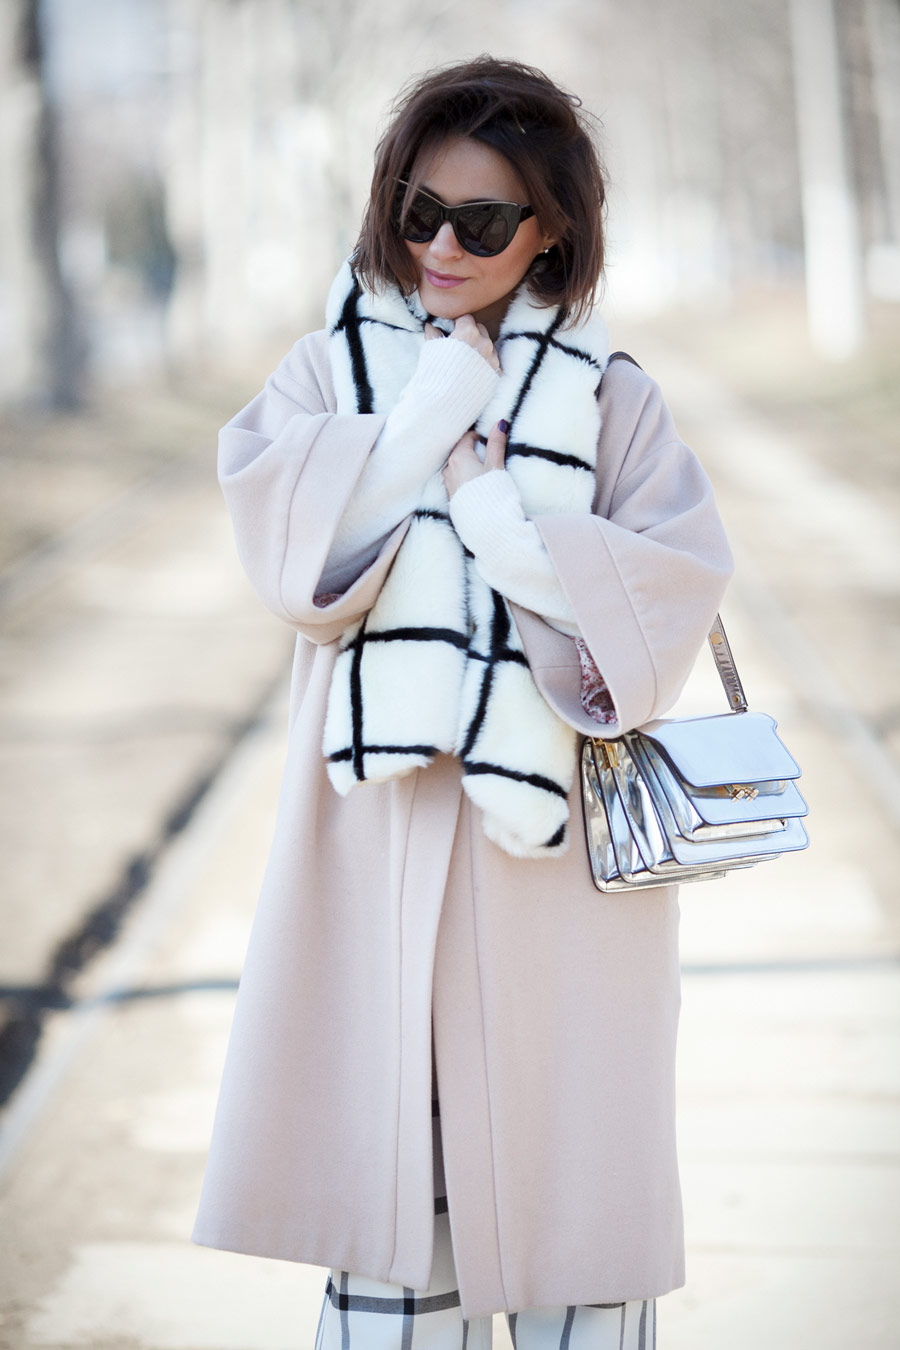 windowpane printed scarf, metallic bag outfit, marni trunk bag outfit, feminine spring outfits,